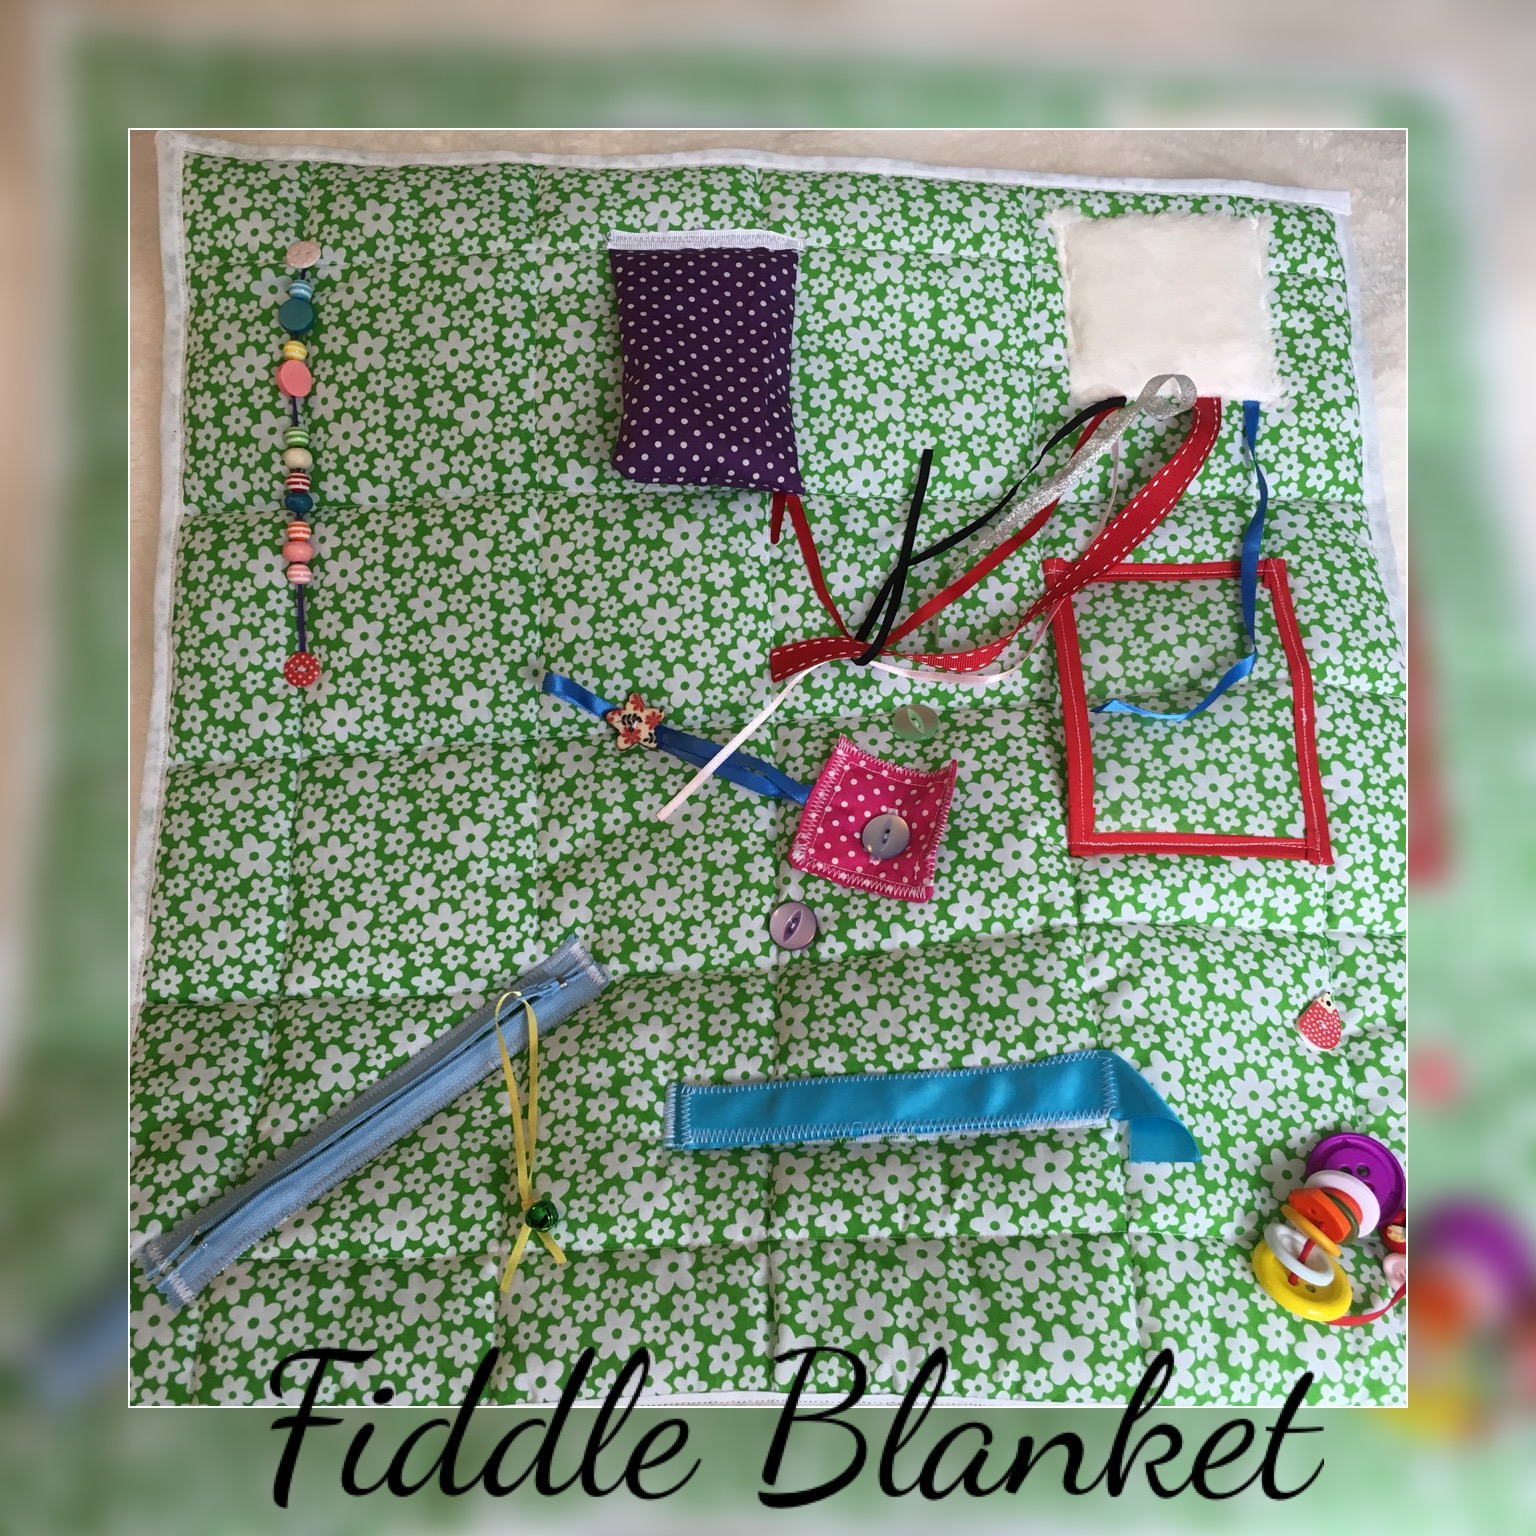 Fiddle Blankets